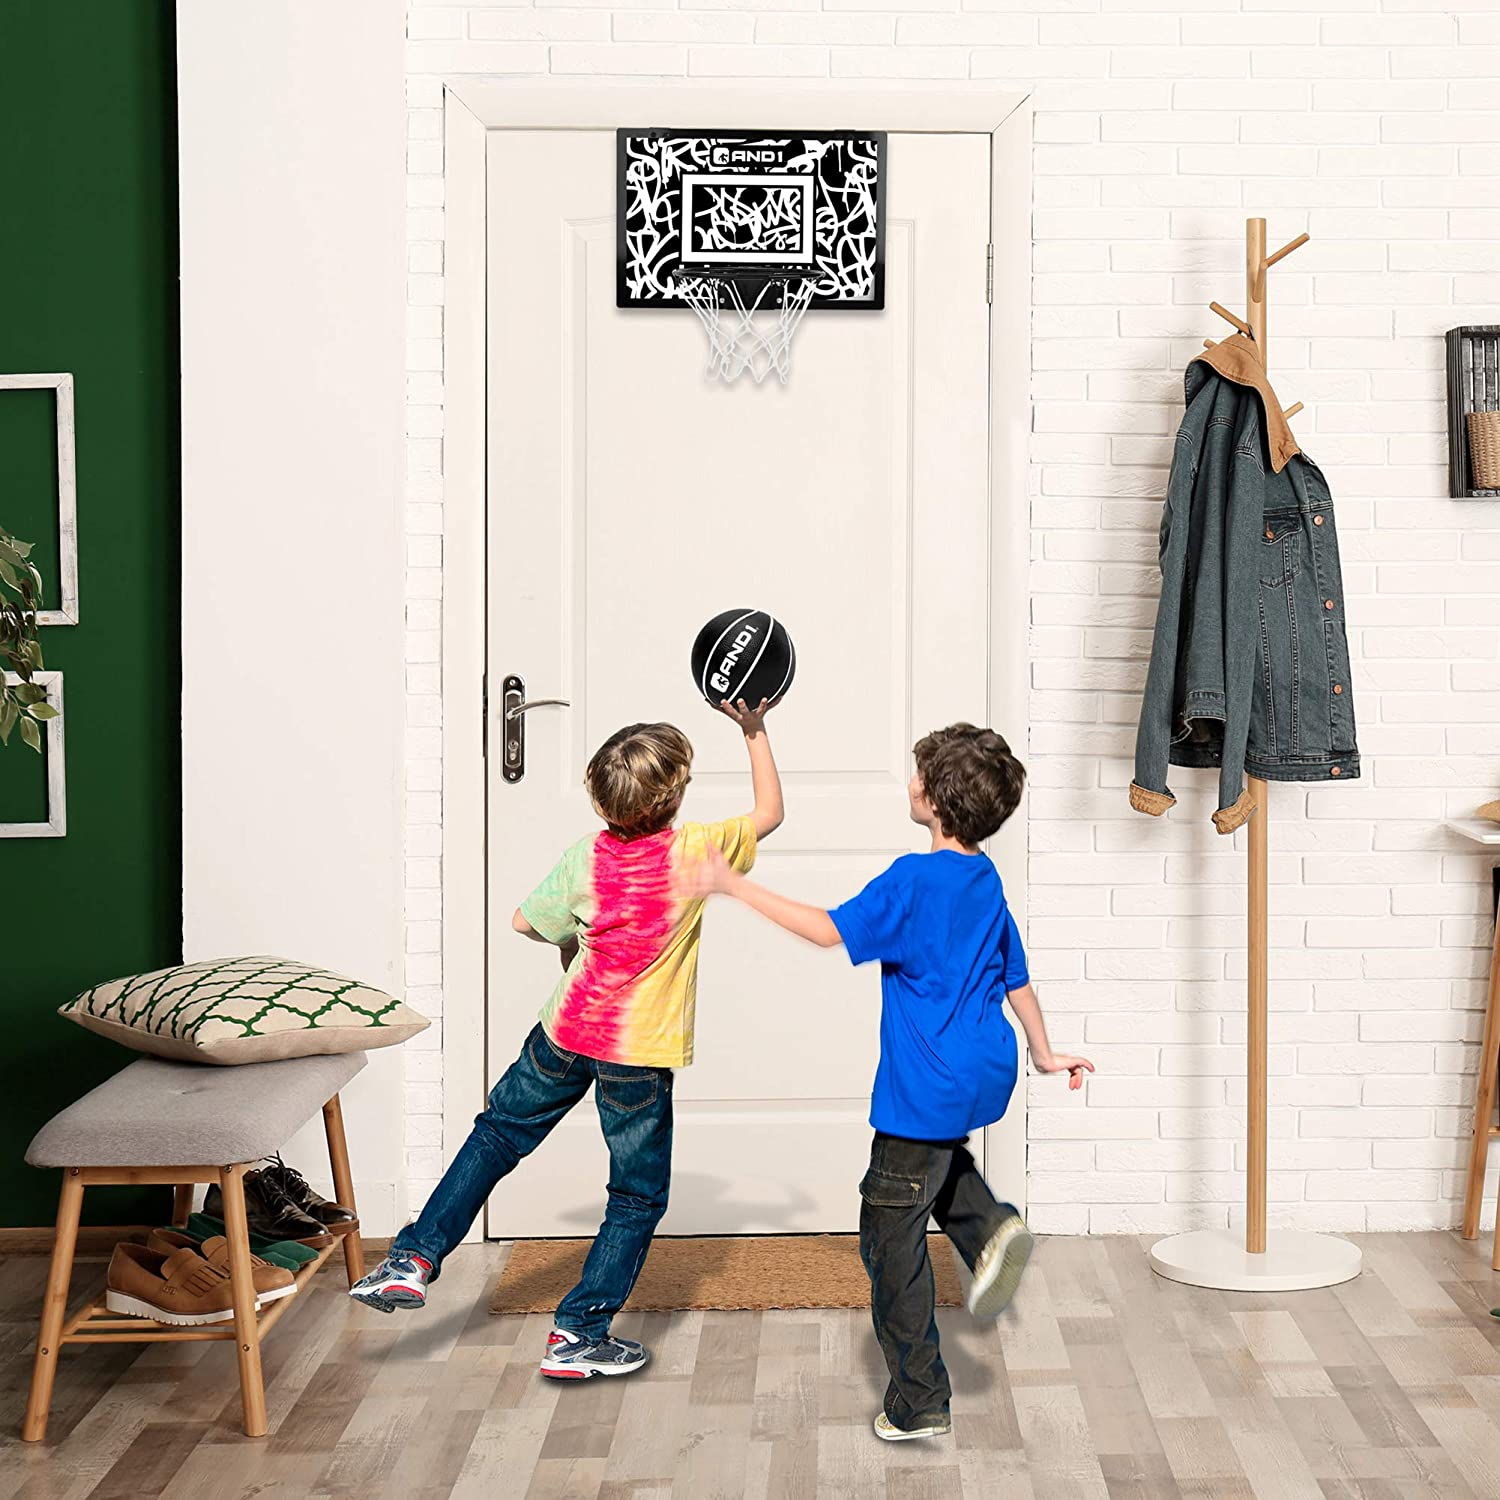 """AND1 Indoor Basketball Hoop 18/""""x12/"""" Mini Basketball Hoop Portable /& Easy to Install Game Set for Children /& Adults Over the Door"""